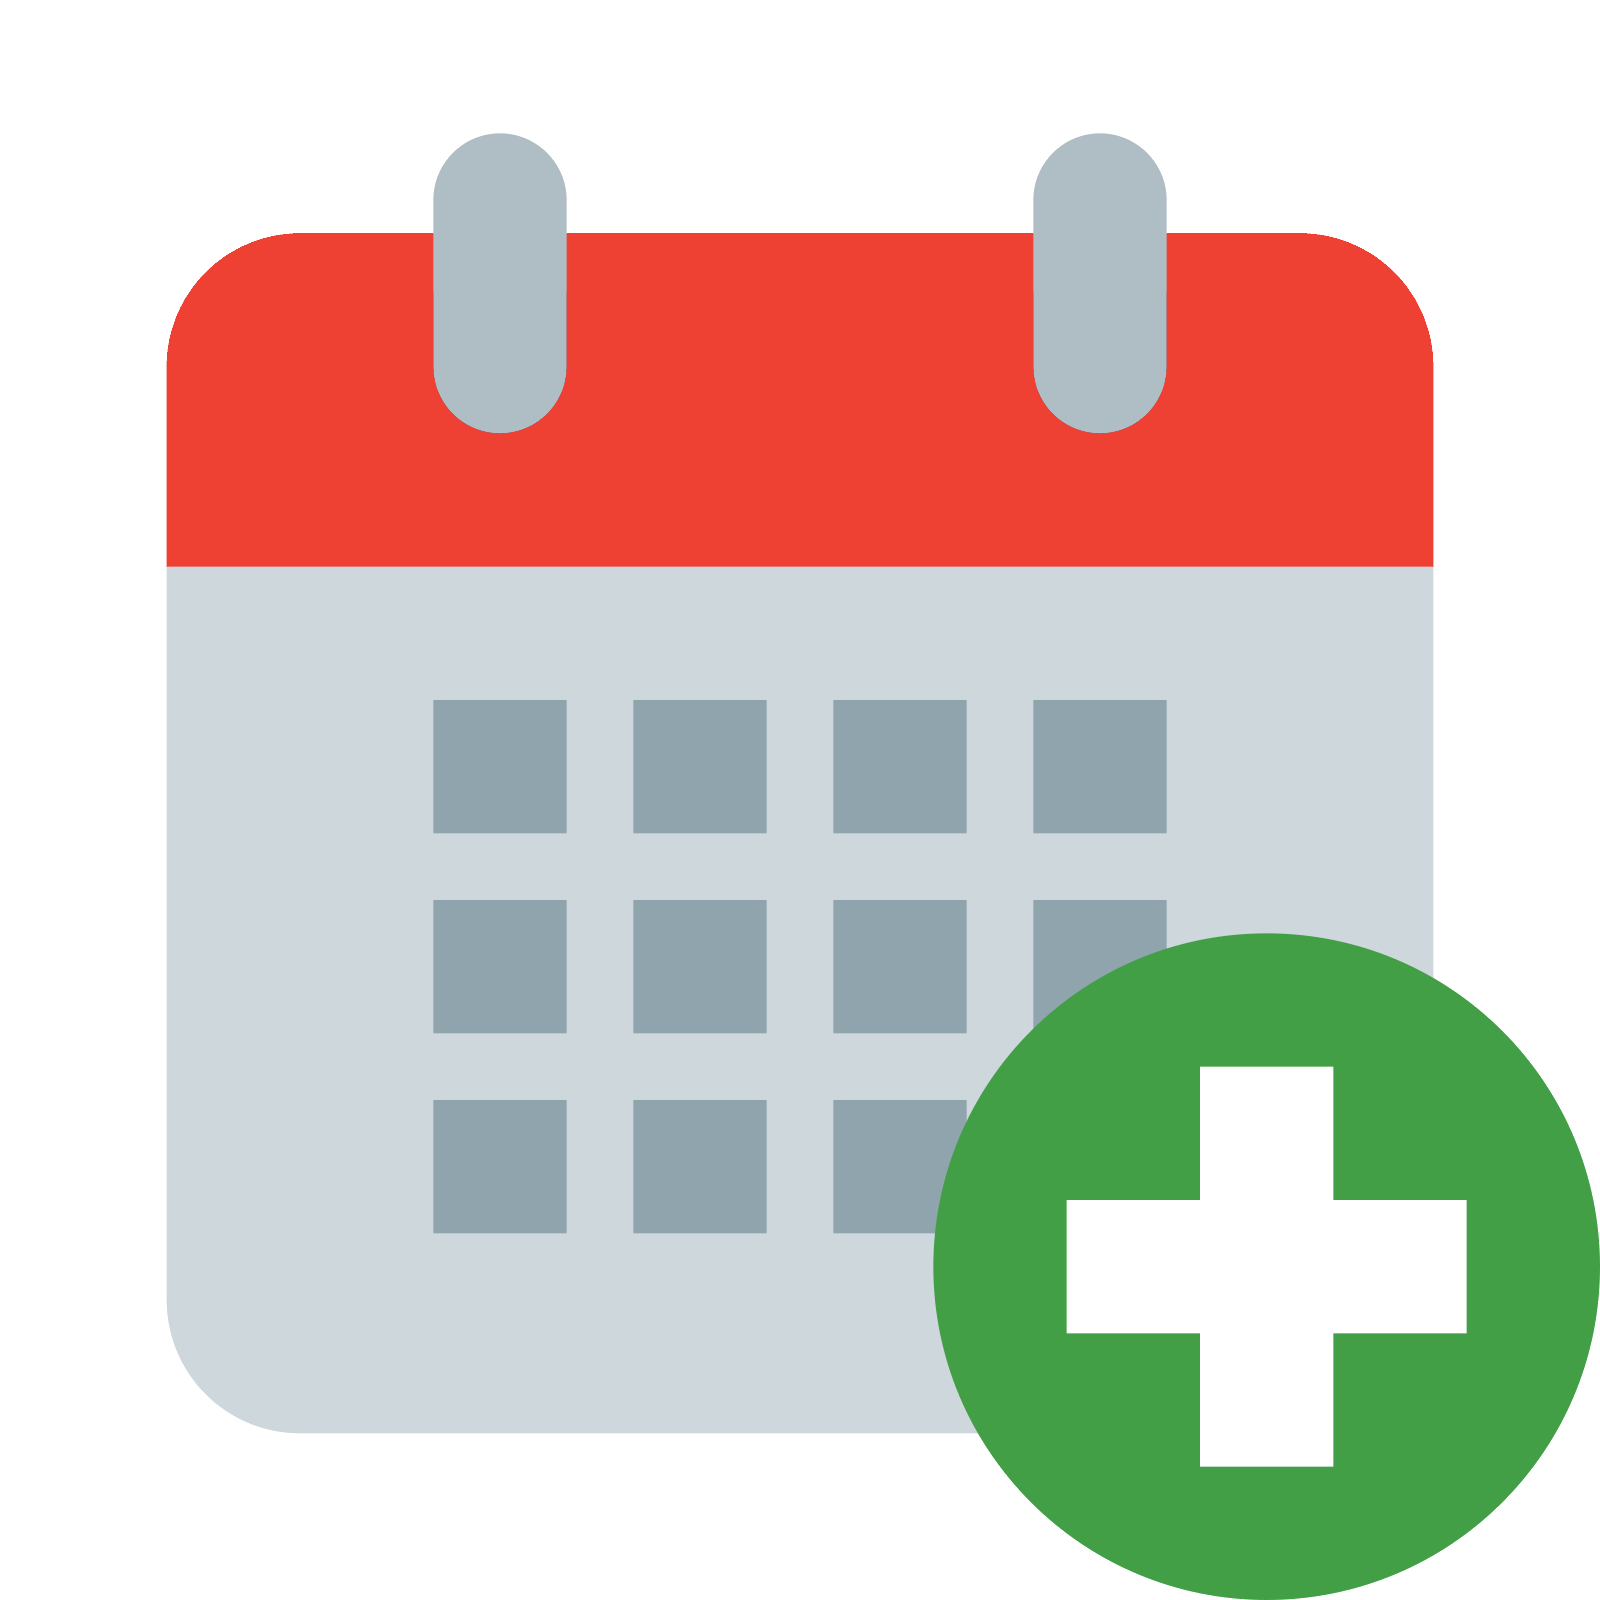 Clipart that looks like apple calendar image free Computer Icons Calendar Clip art - others 1600*1600 transprent Png ... image free